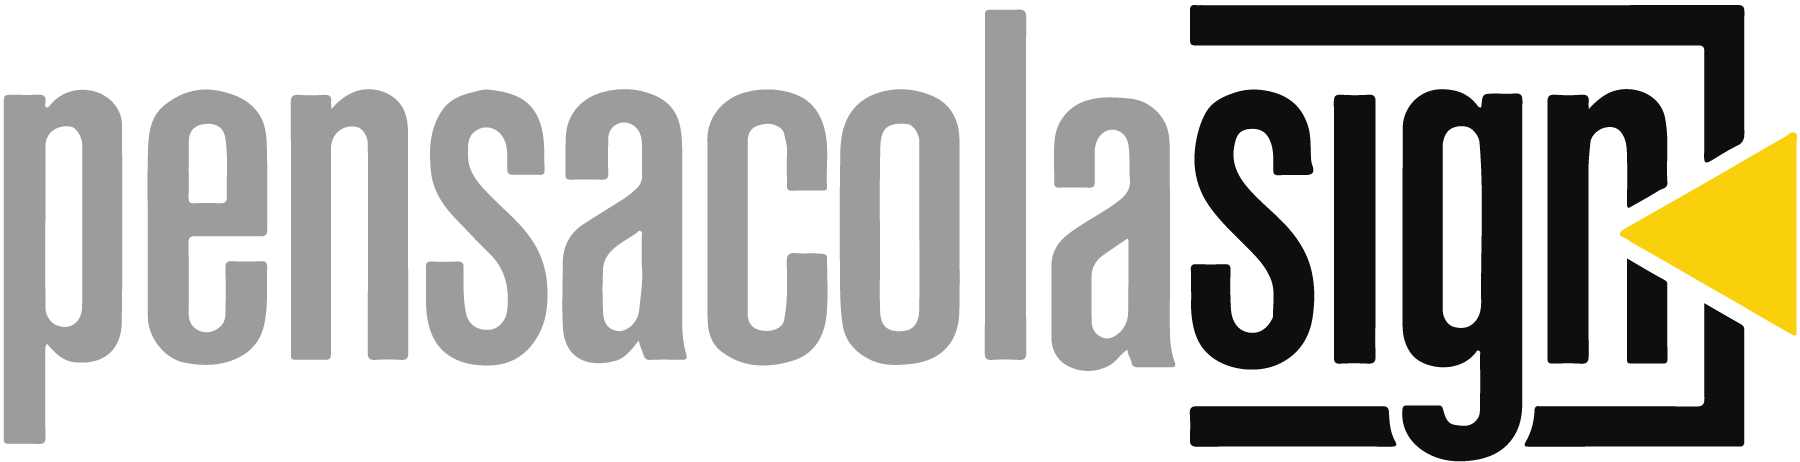 Pensacola Sign Logo